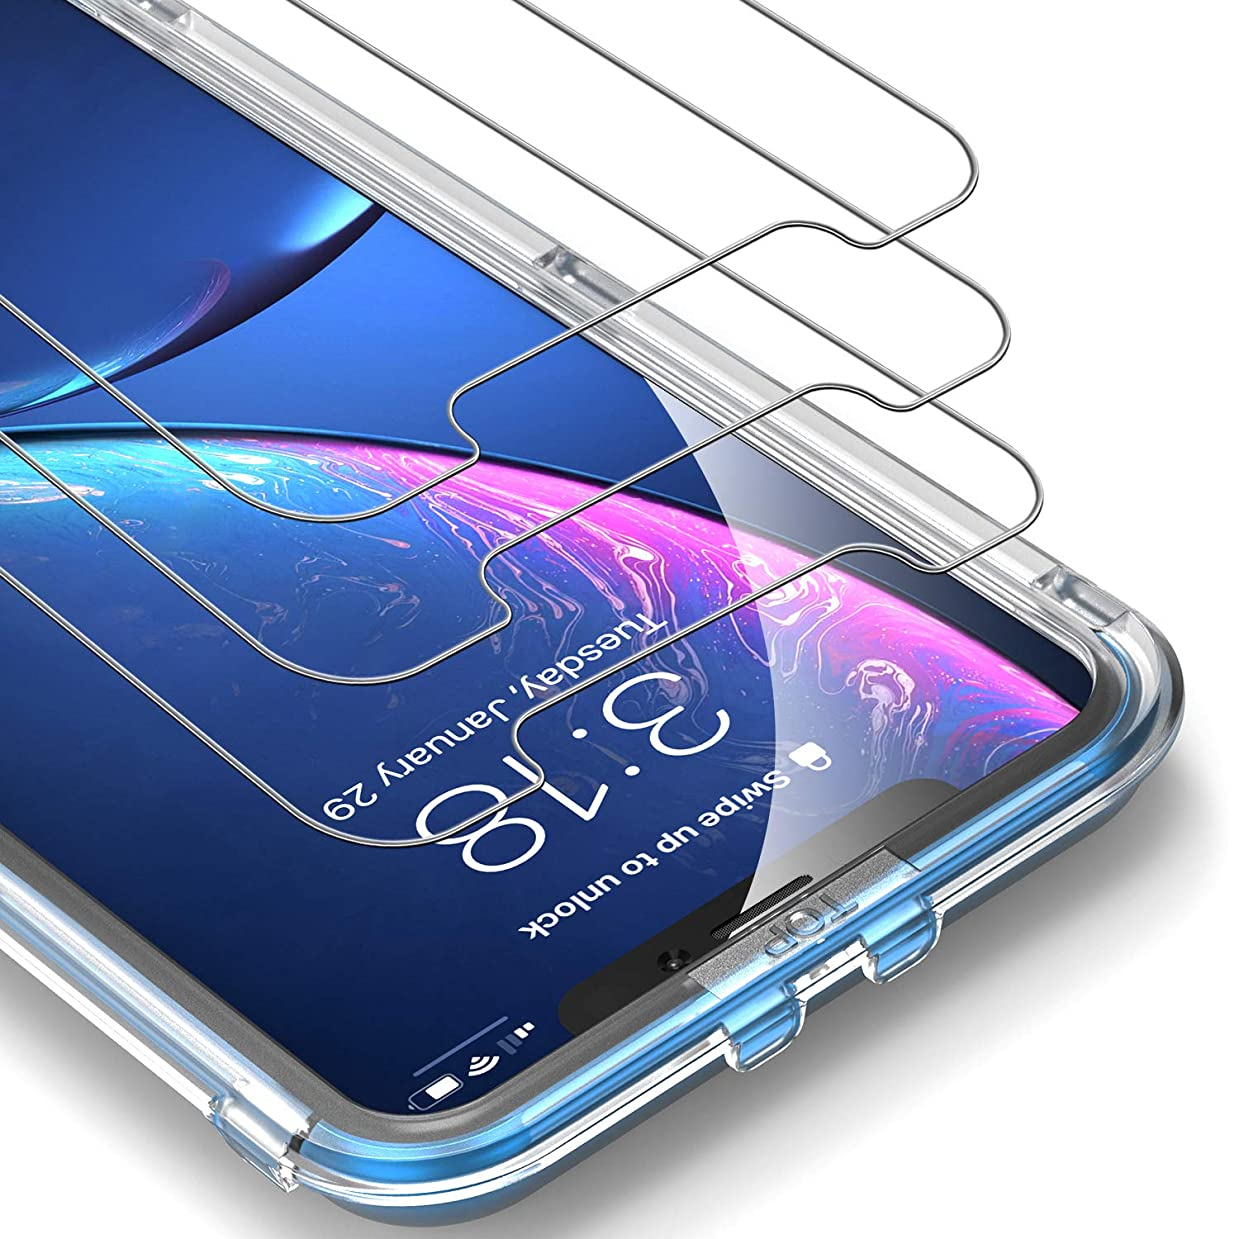 UNBREAKcable iPhone XR Screen Protector [3-Pack] - 9H Hardness Tempered Glass for iPhone XR, Bubble-Free, Shatter-Proof, Free Installation Frame, Case-Friendly, 3D Touch Support